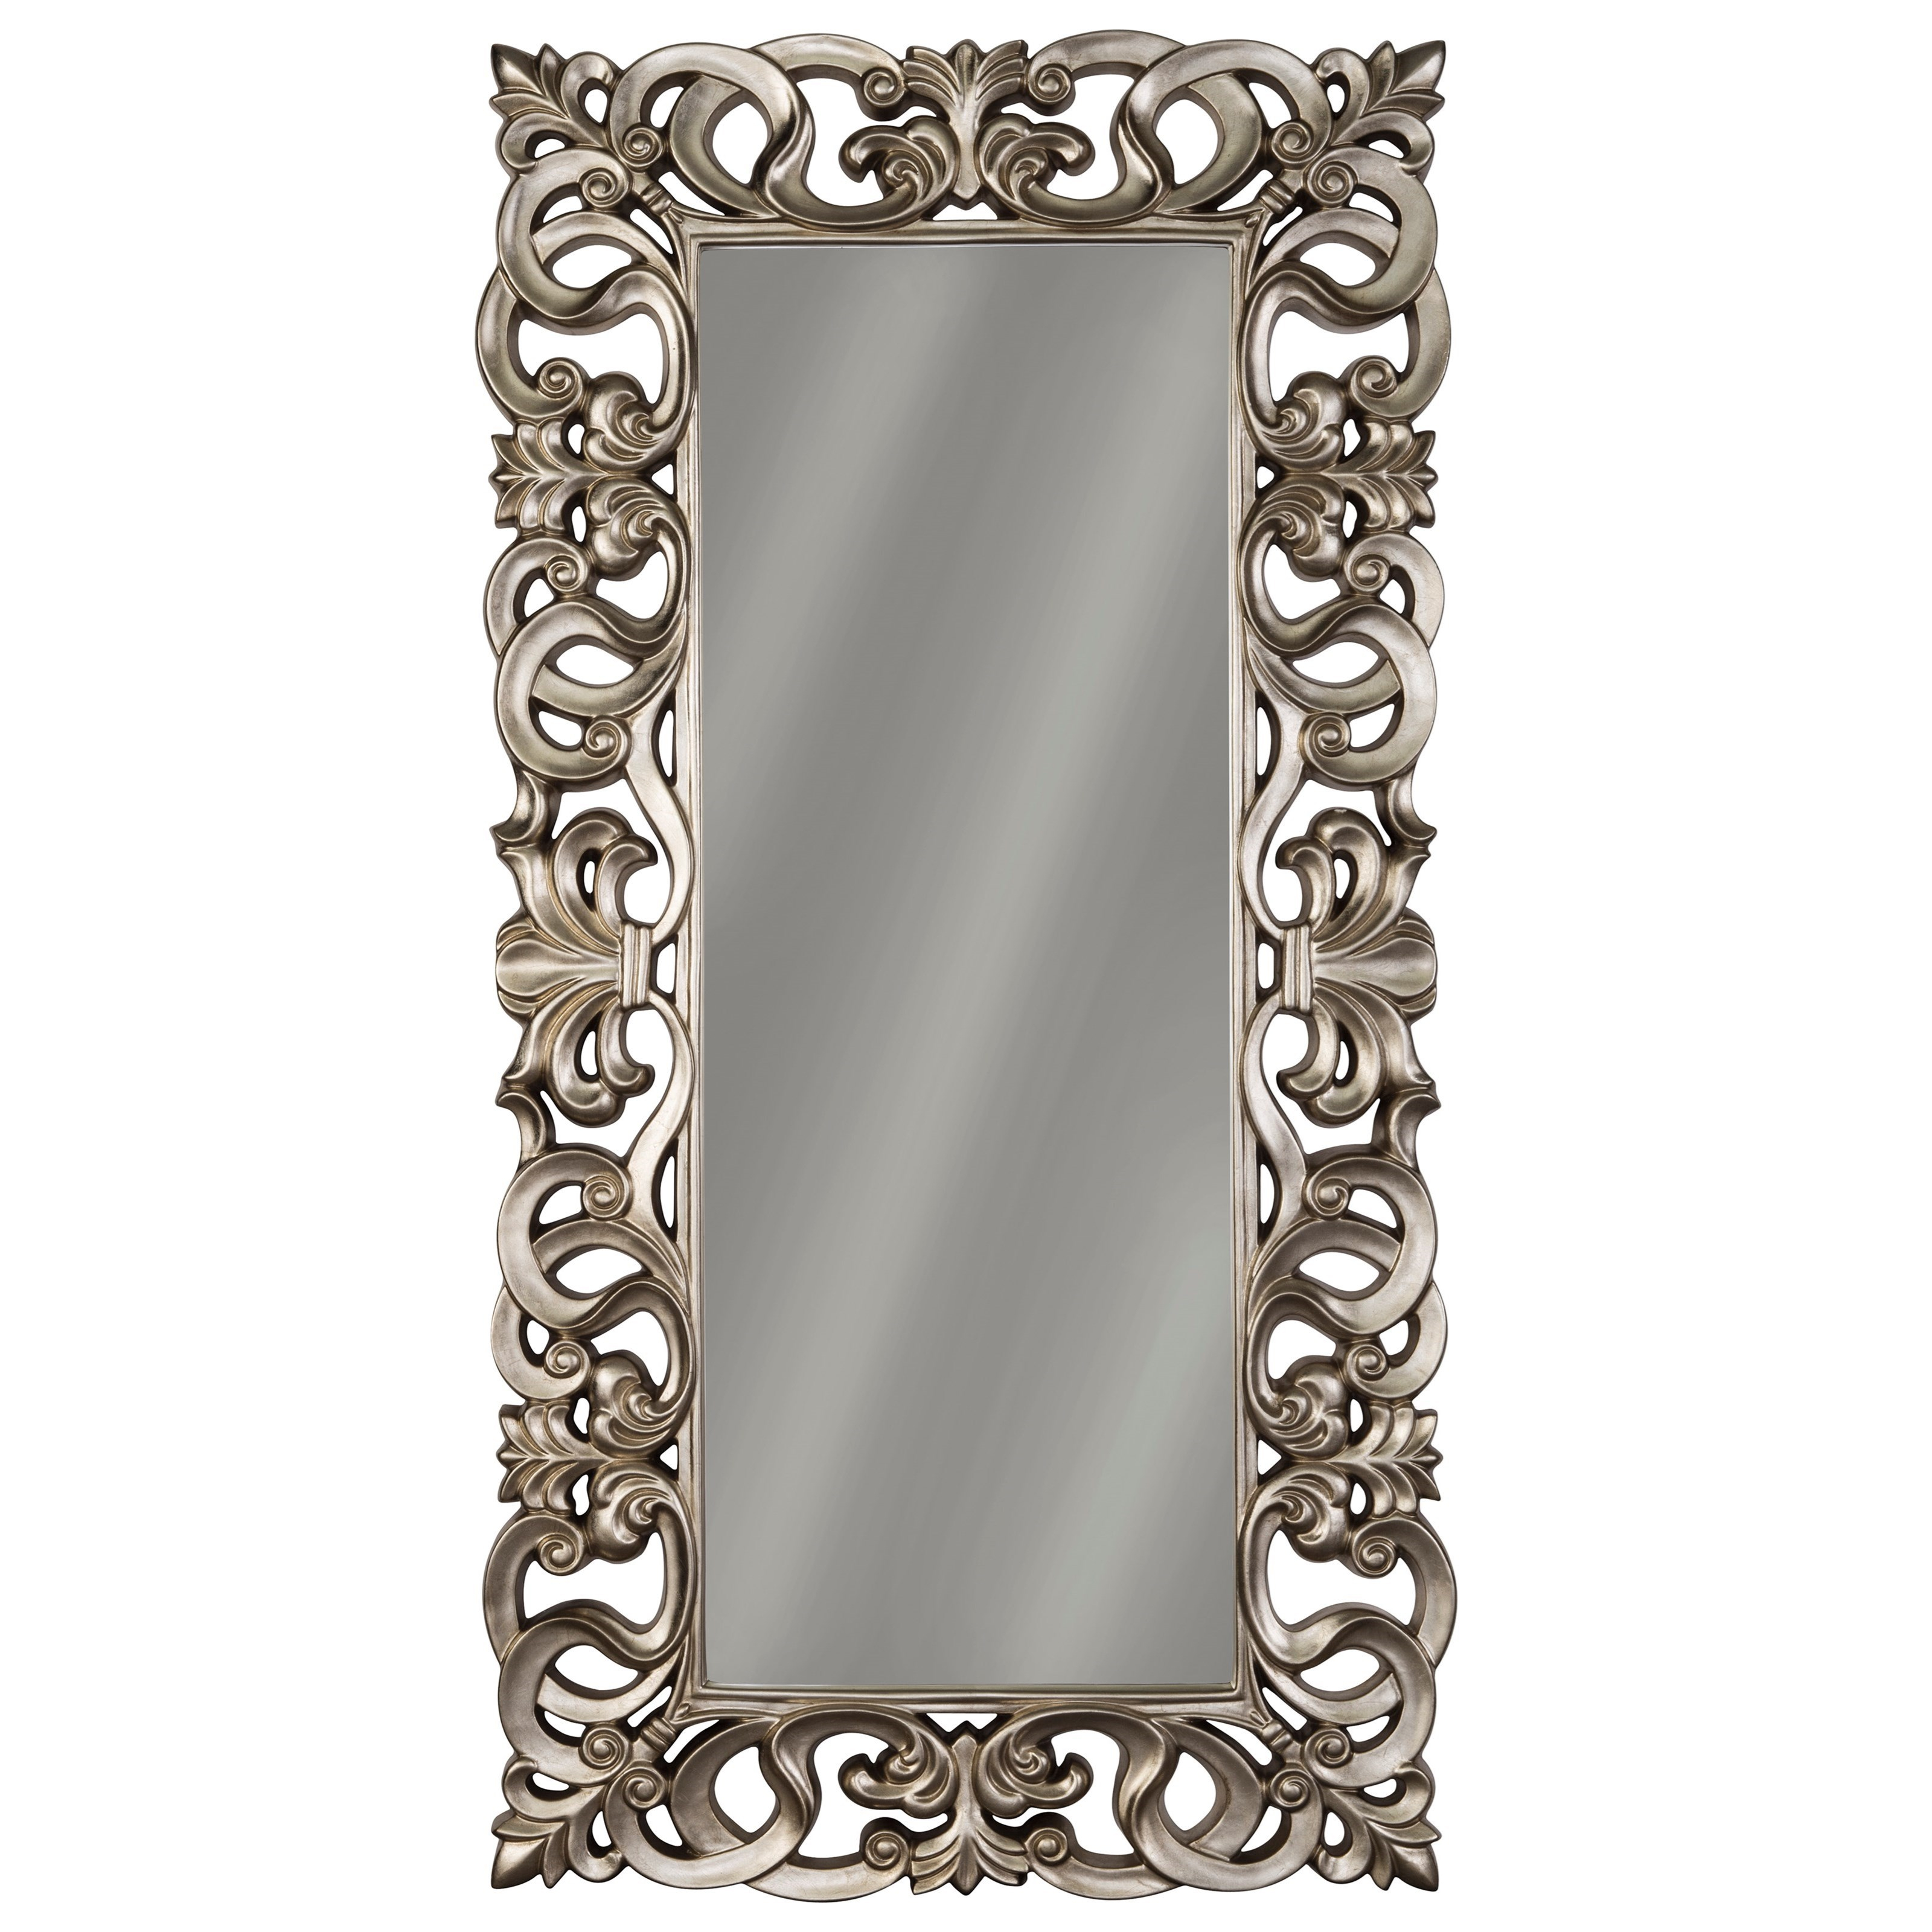 Accent Mirrors Lucia Antique Silver Finish Accent Mirrorsignature Designashley At Becker Furniture World Throughout Rectangle Accent Mirrors (View 8 of 20)